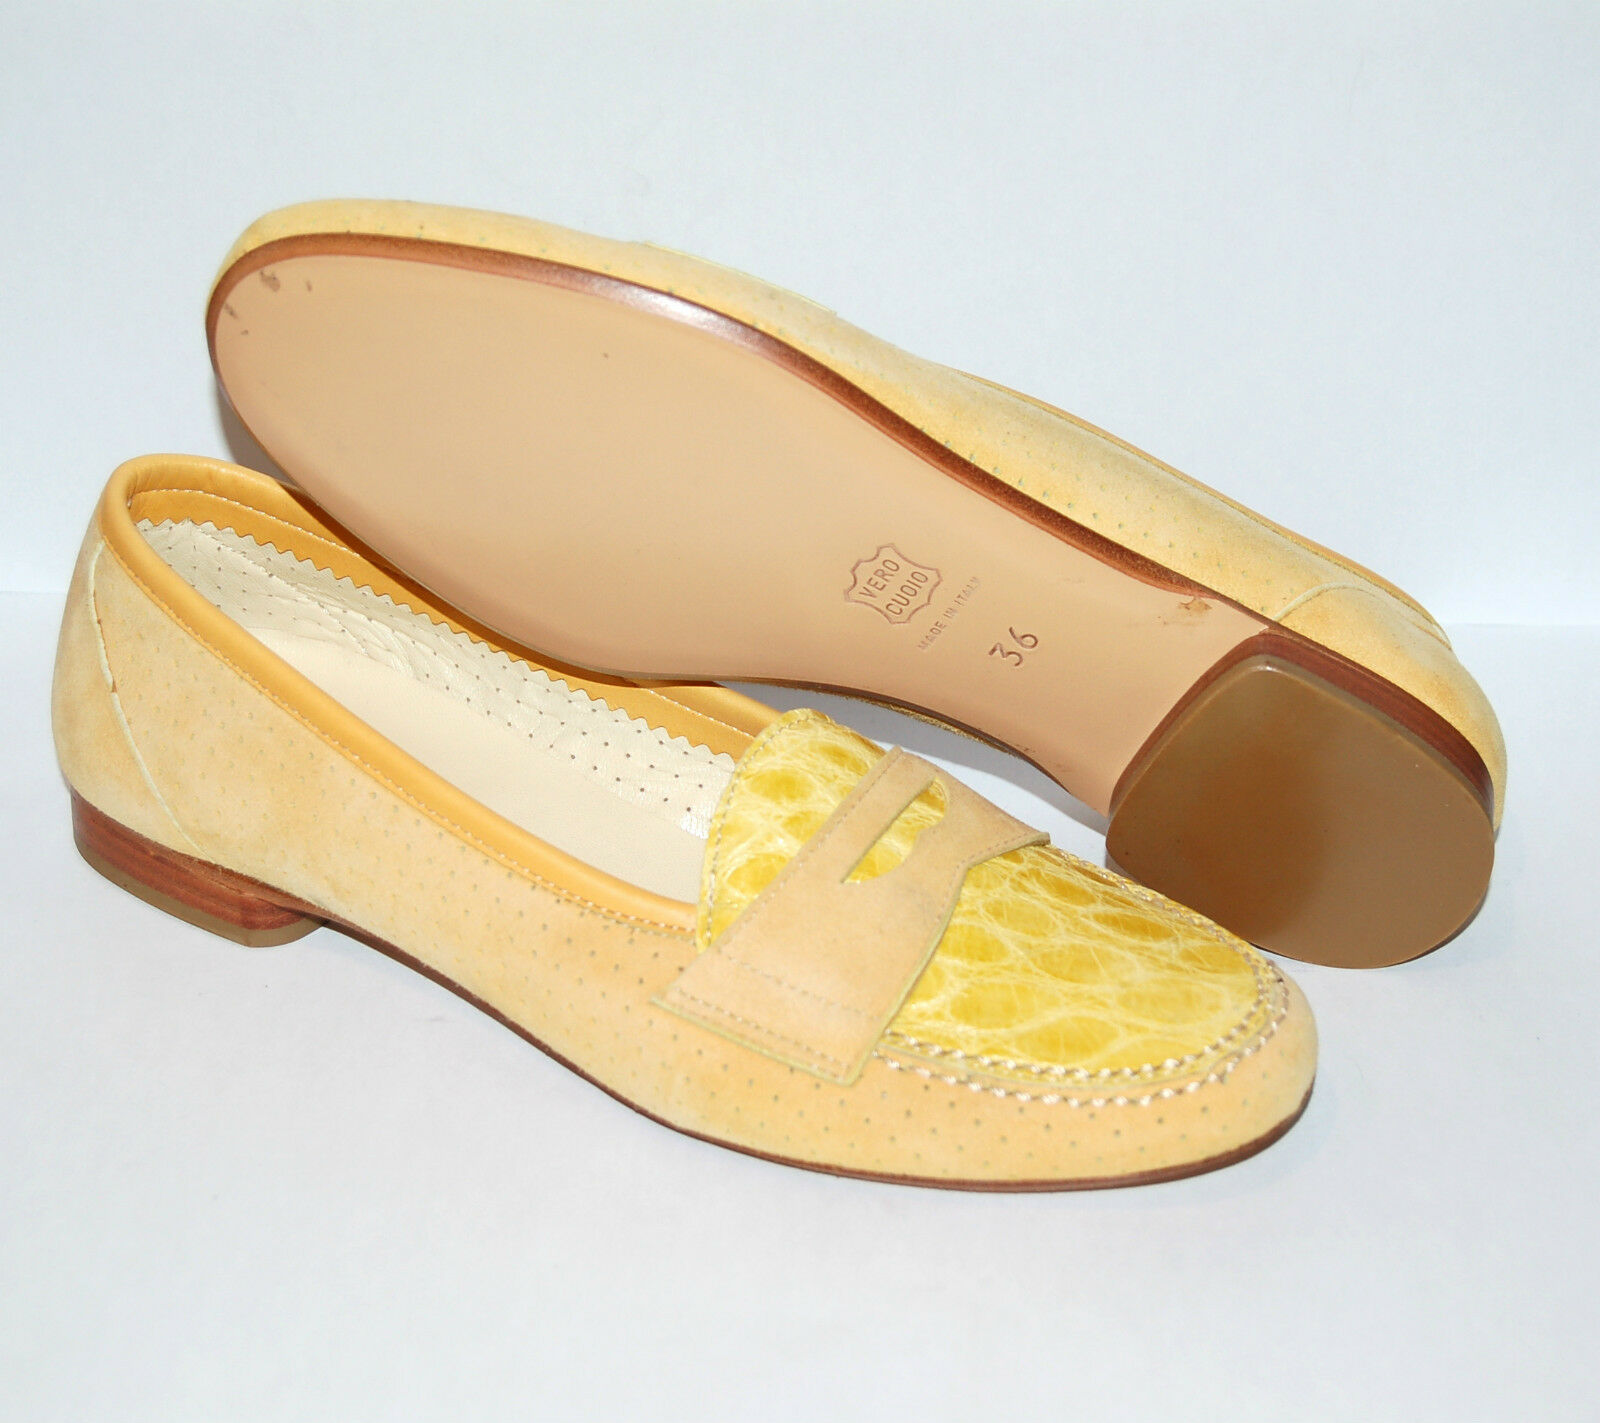 WOMAN - PENNY LOAFER - 36 + - GENUINE  CROCODILE + 36 PERF. SUEDE - LEATHER SOLE 1e8f82